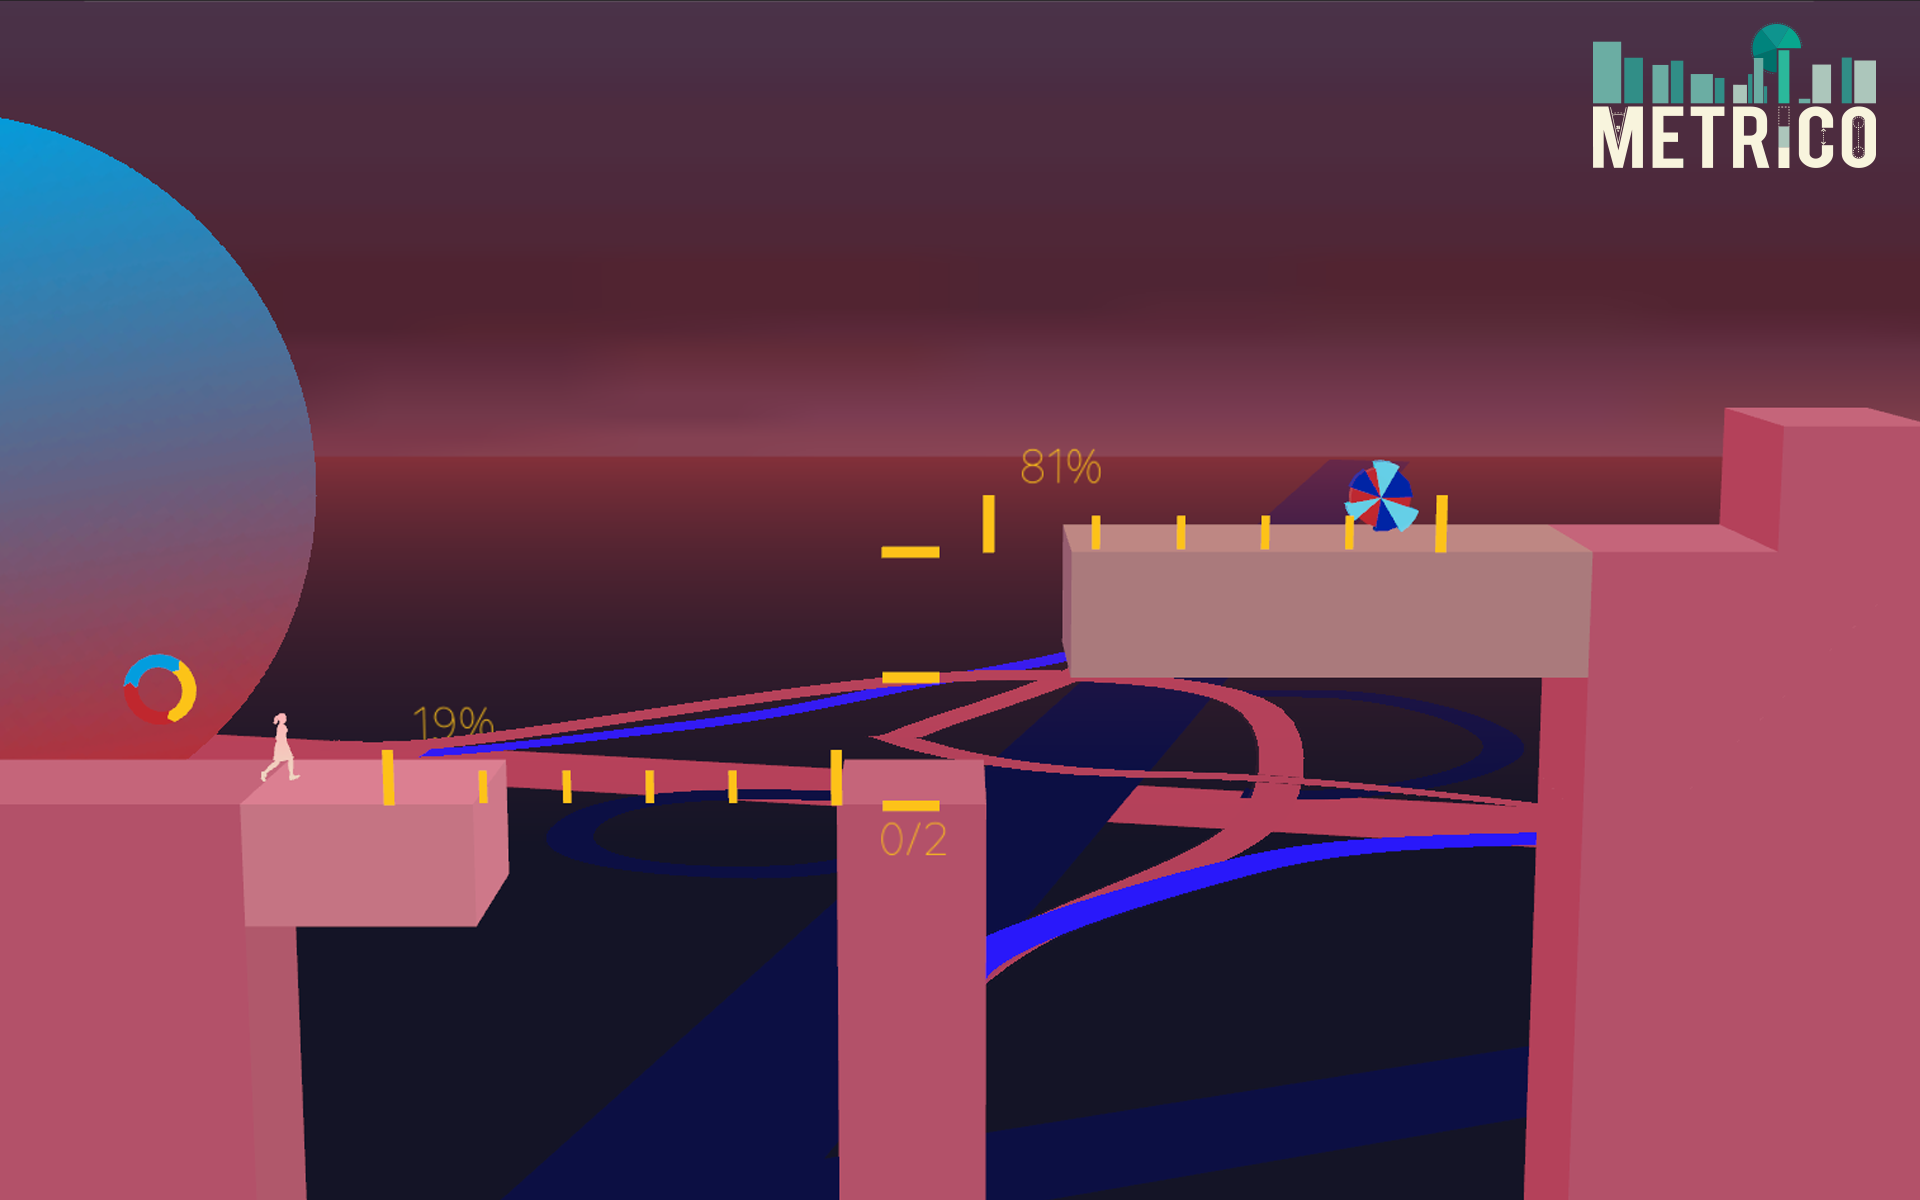 006_Metrico_branded_screenshot_4